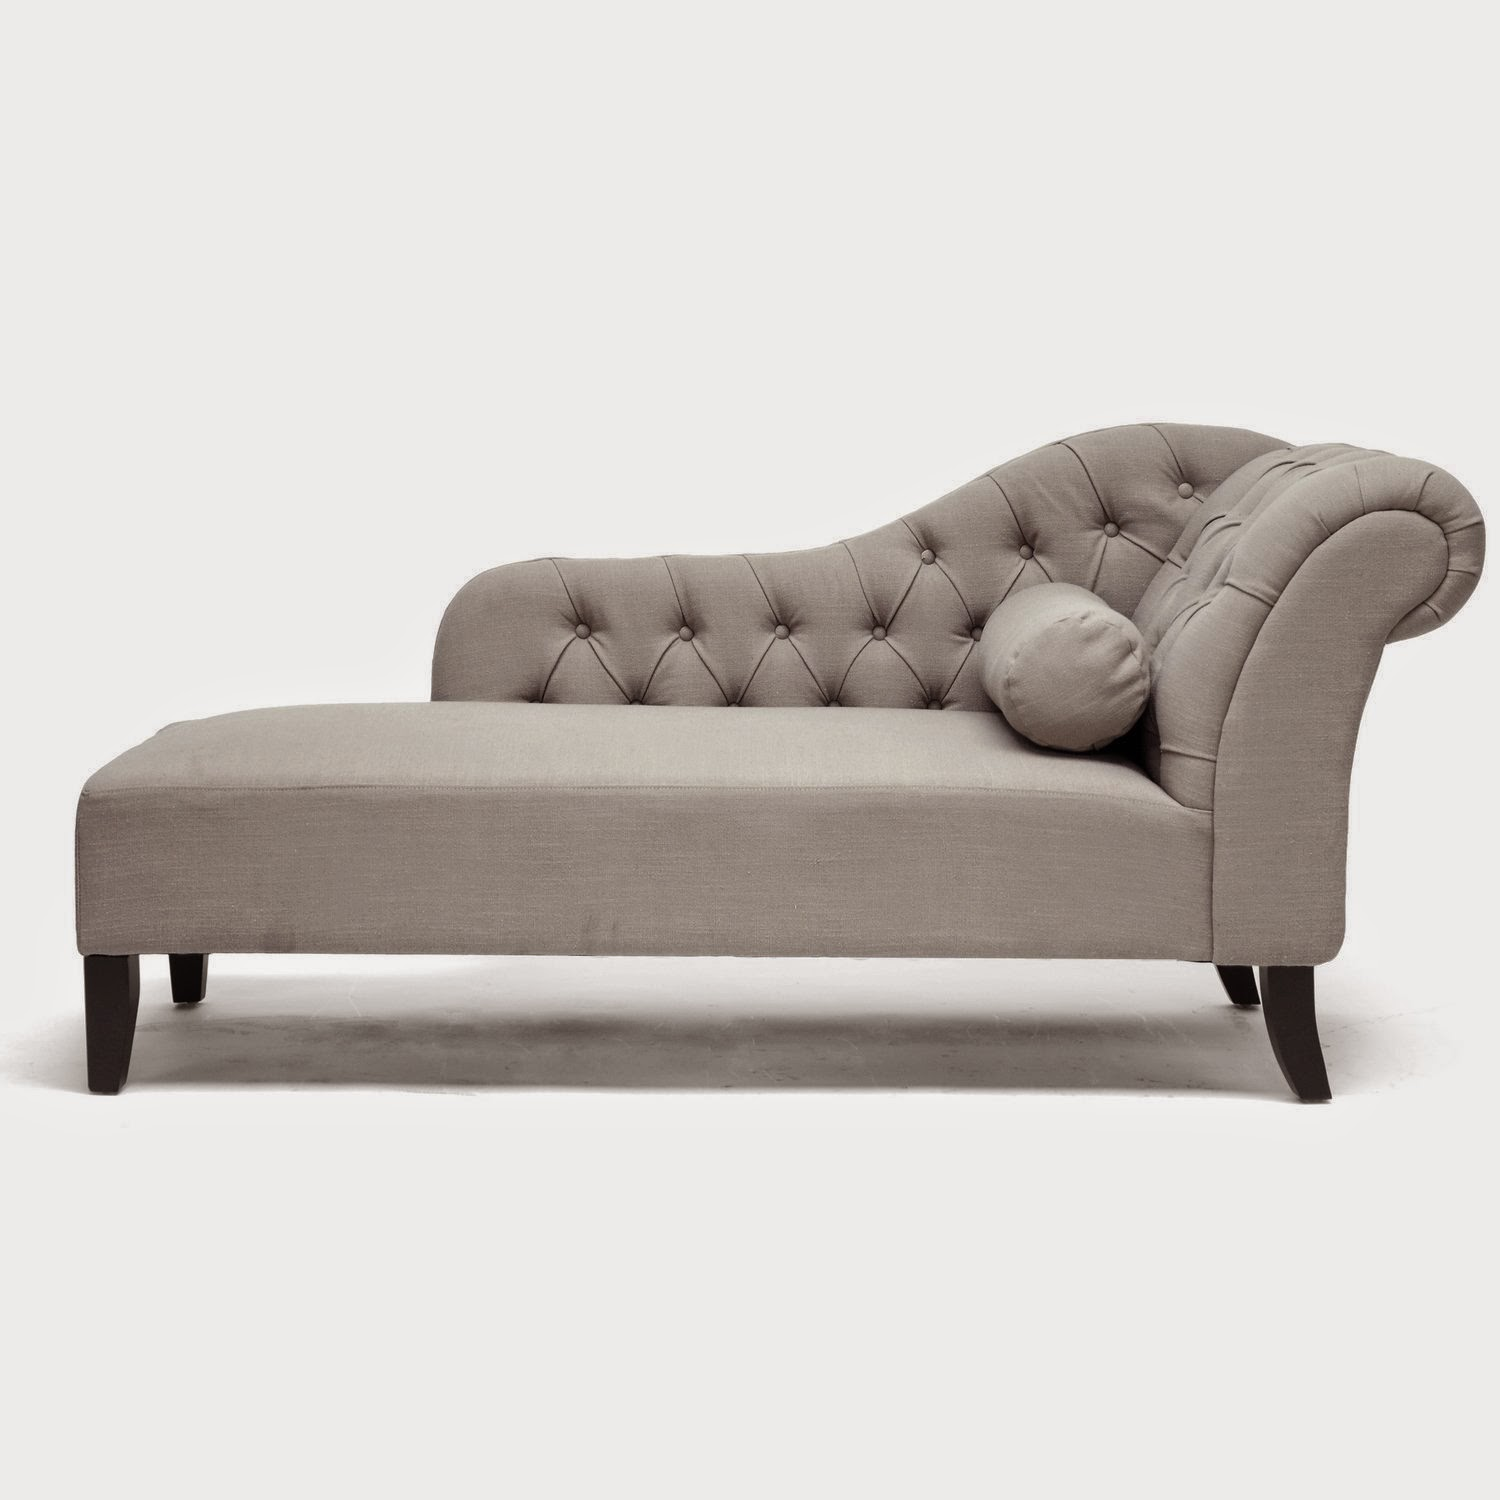 Cheap Victorian Sofa For Sales: Modern Victorian Sofa